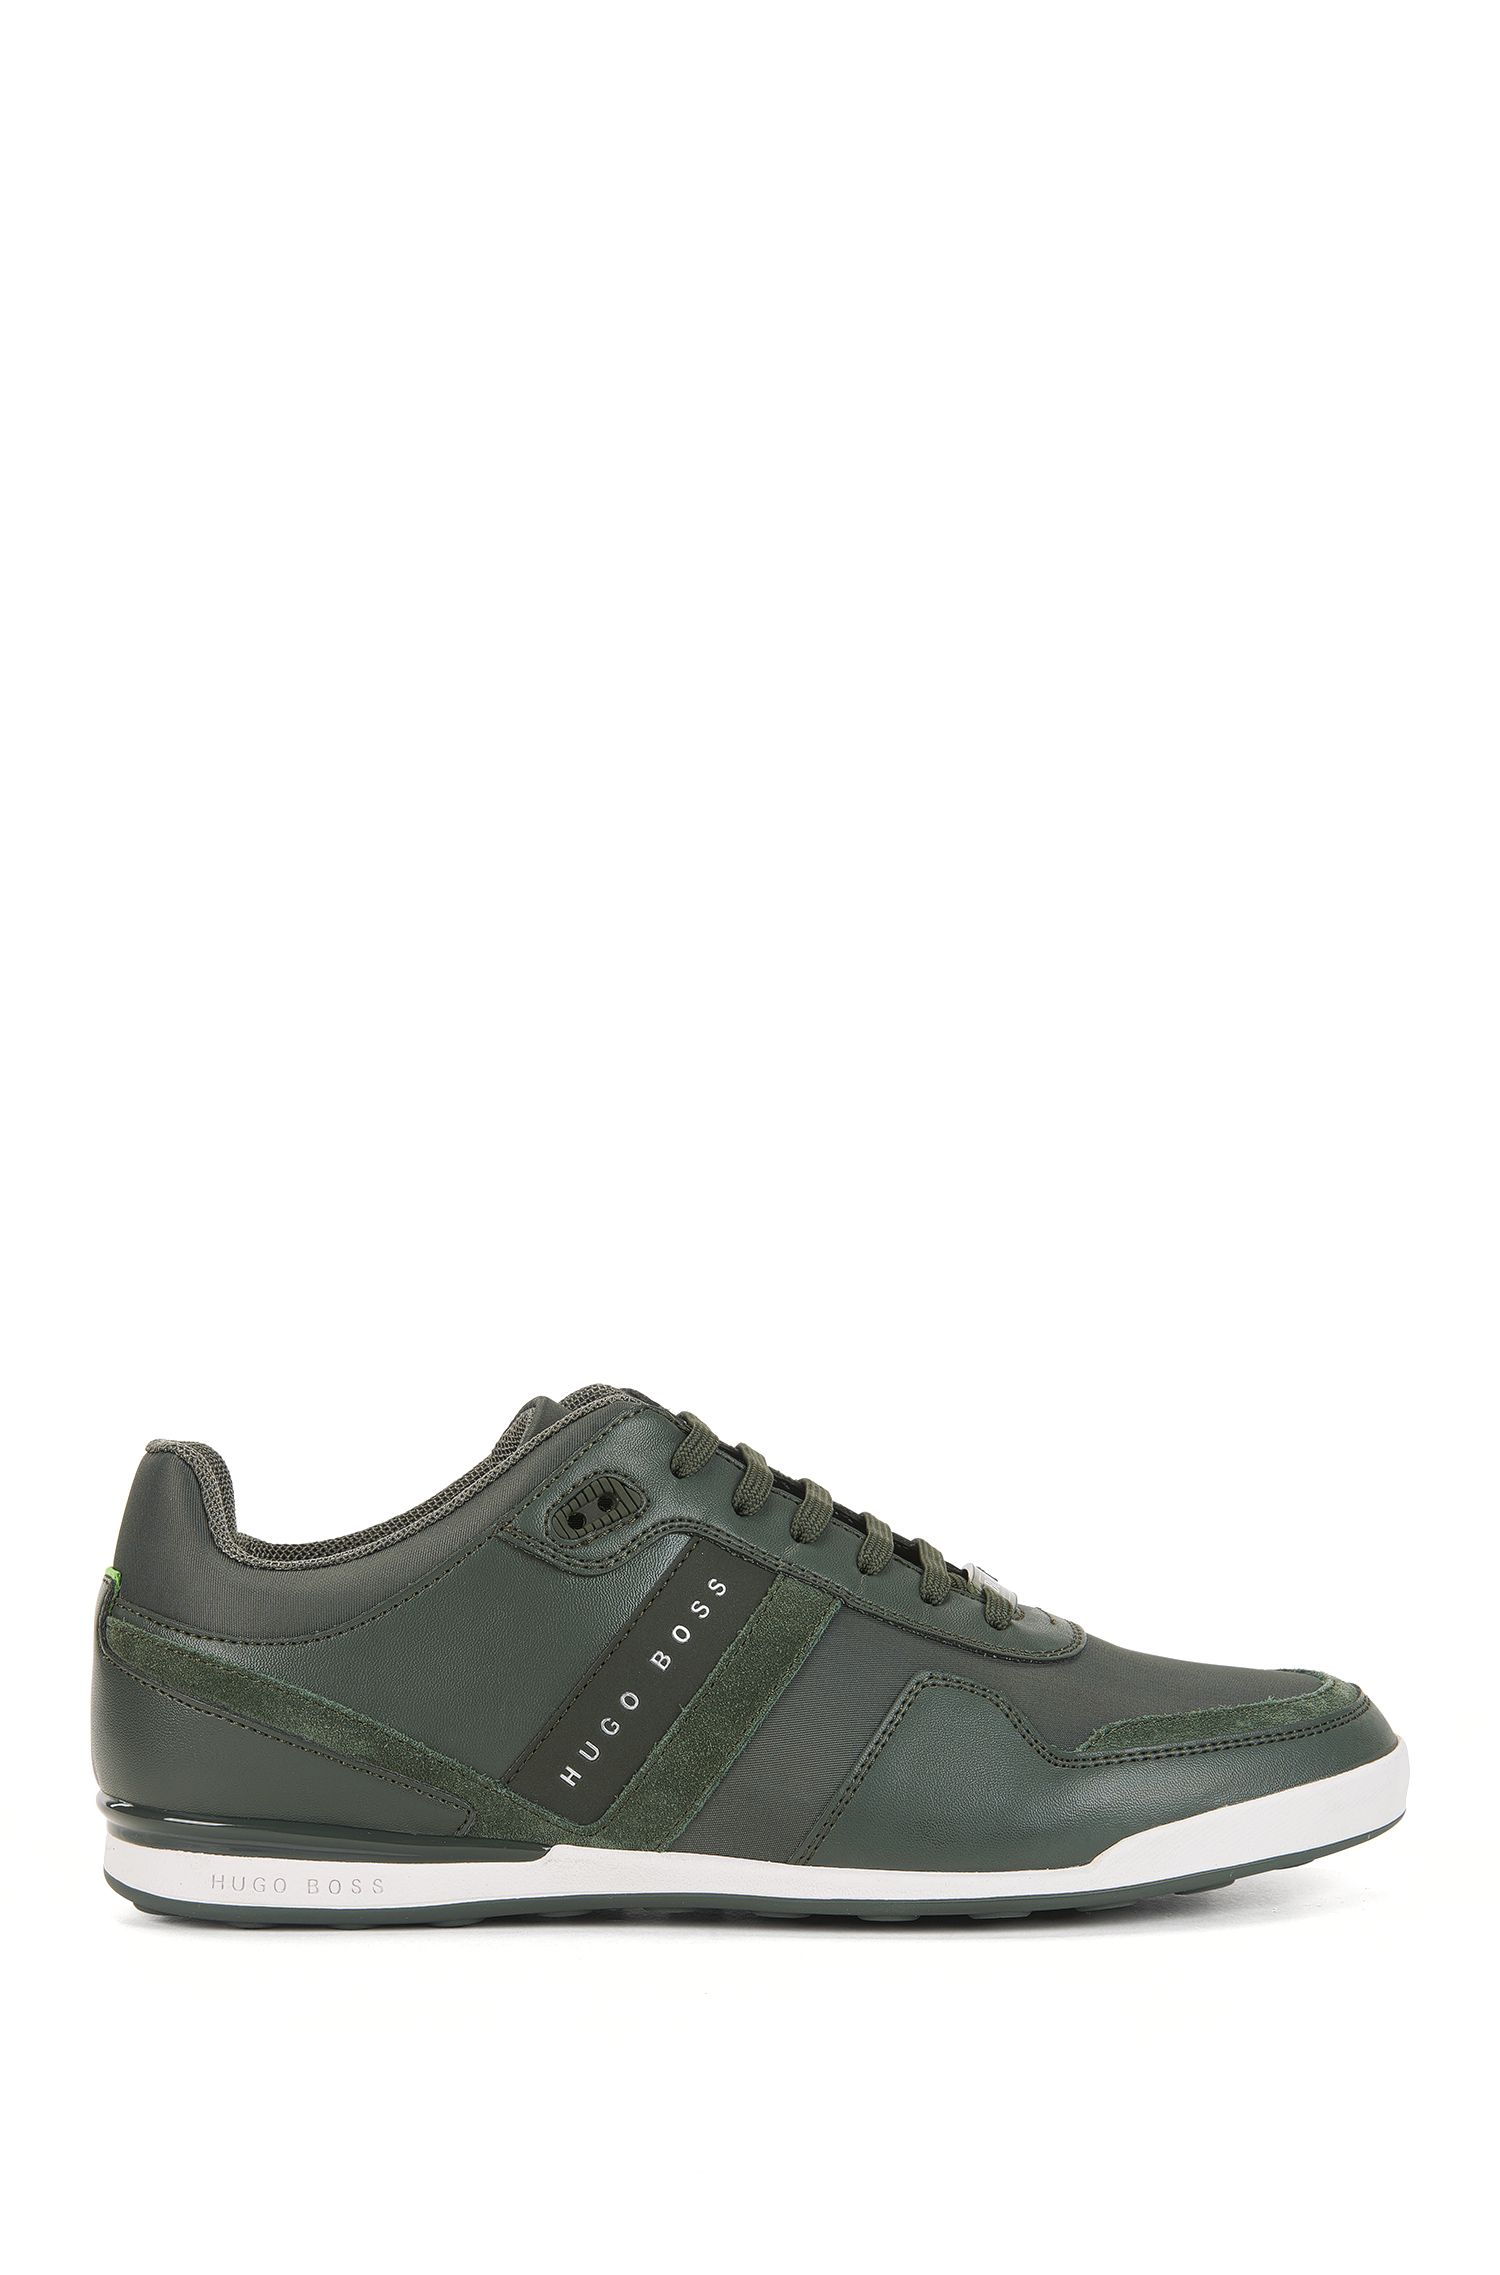 Low-top trainers with leather panels